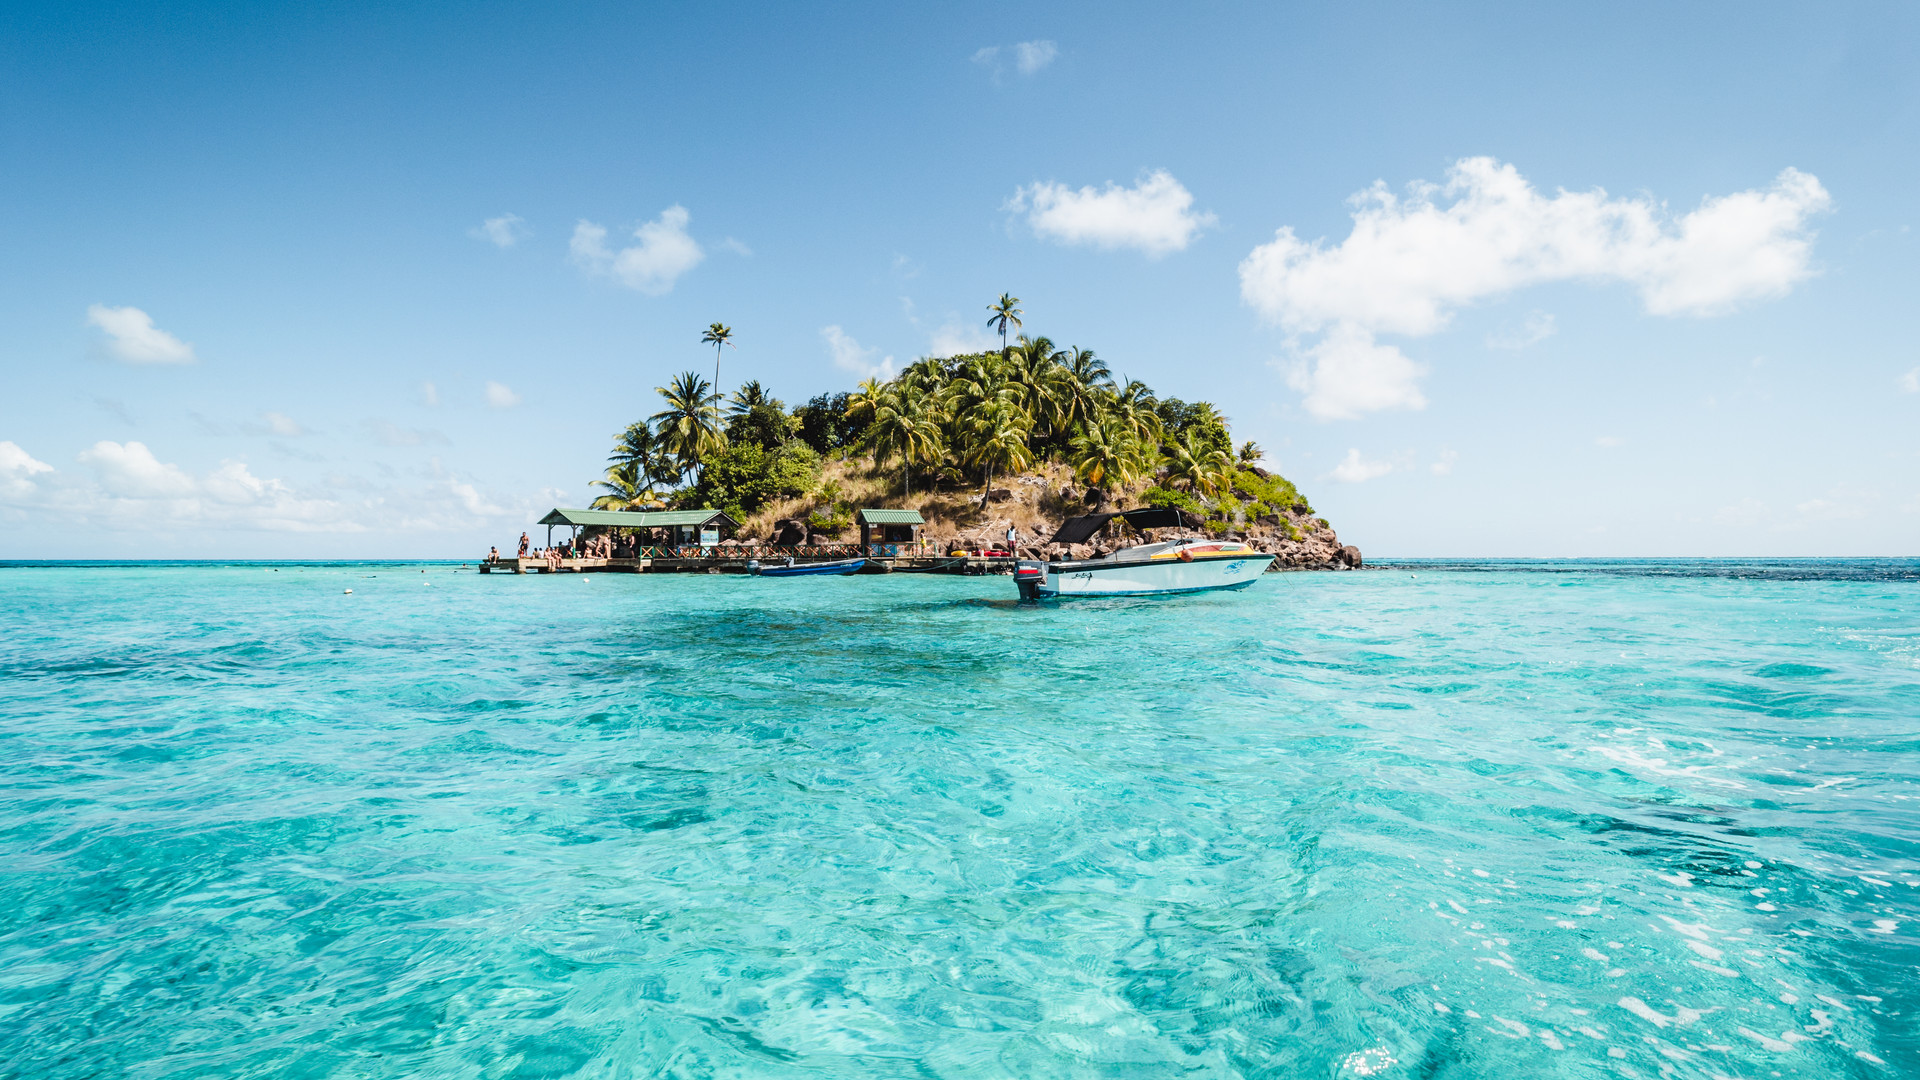 Panoramic view of a tropical island in the sun and crystal clear water